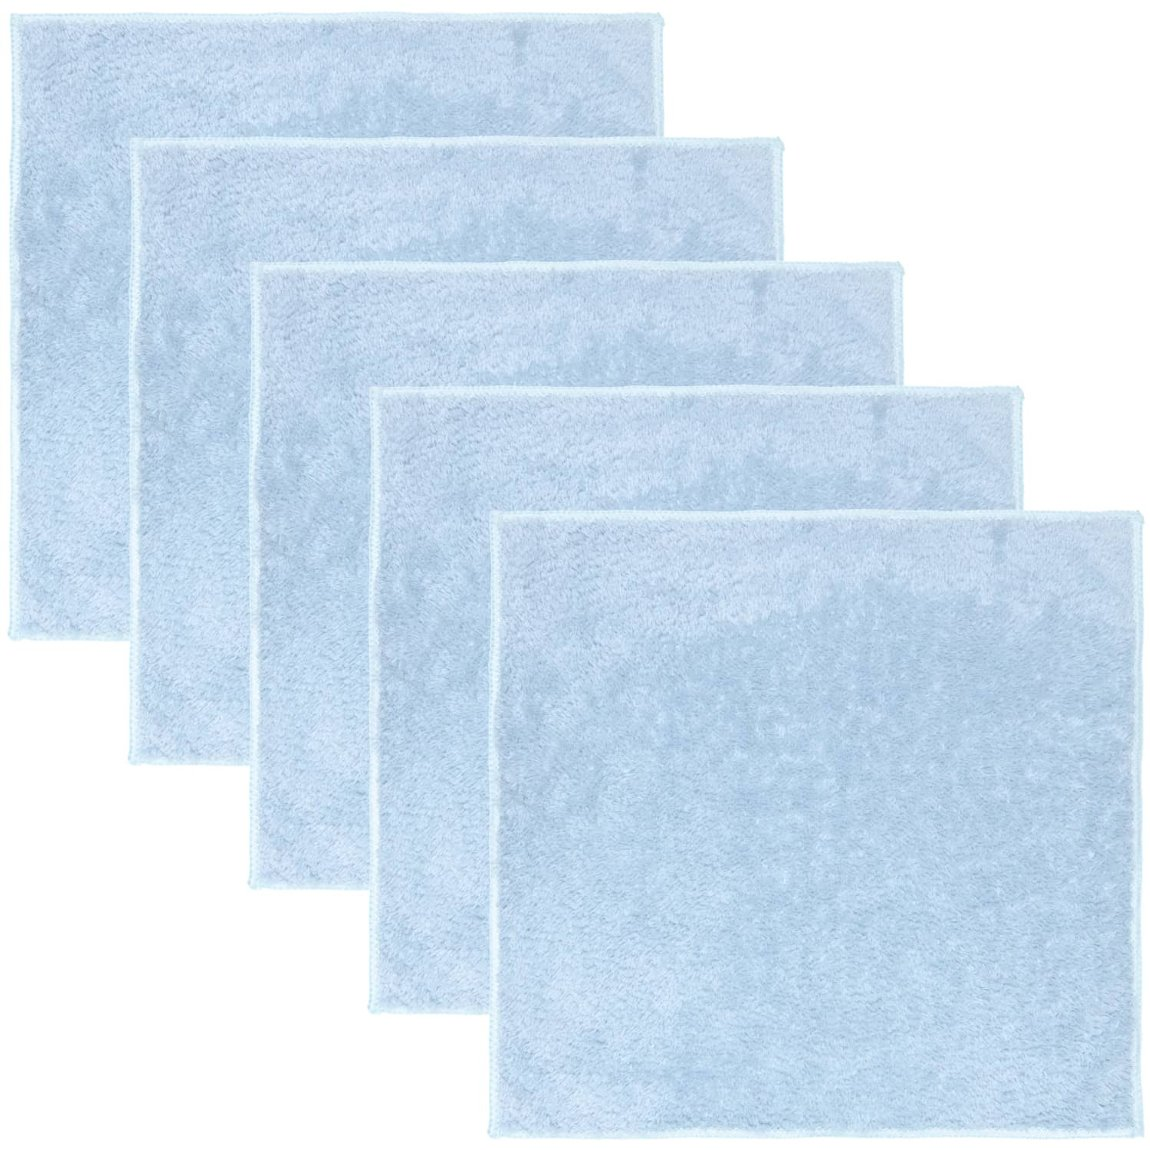 Deluxe Super Soft Microfibre Dusters 5pk - Blue